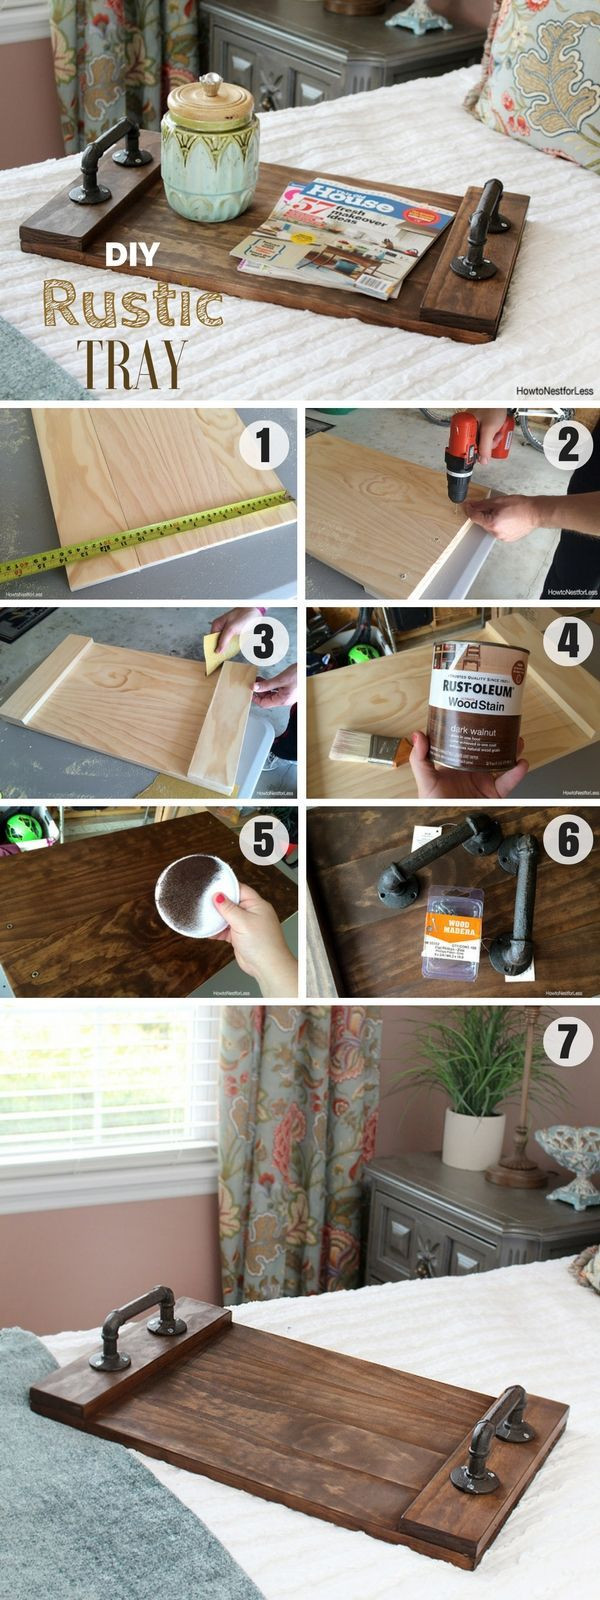 DIY Wood Art Projects  Best 25 Rustic wood crafts ideas on Pinterest